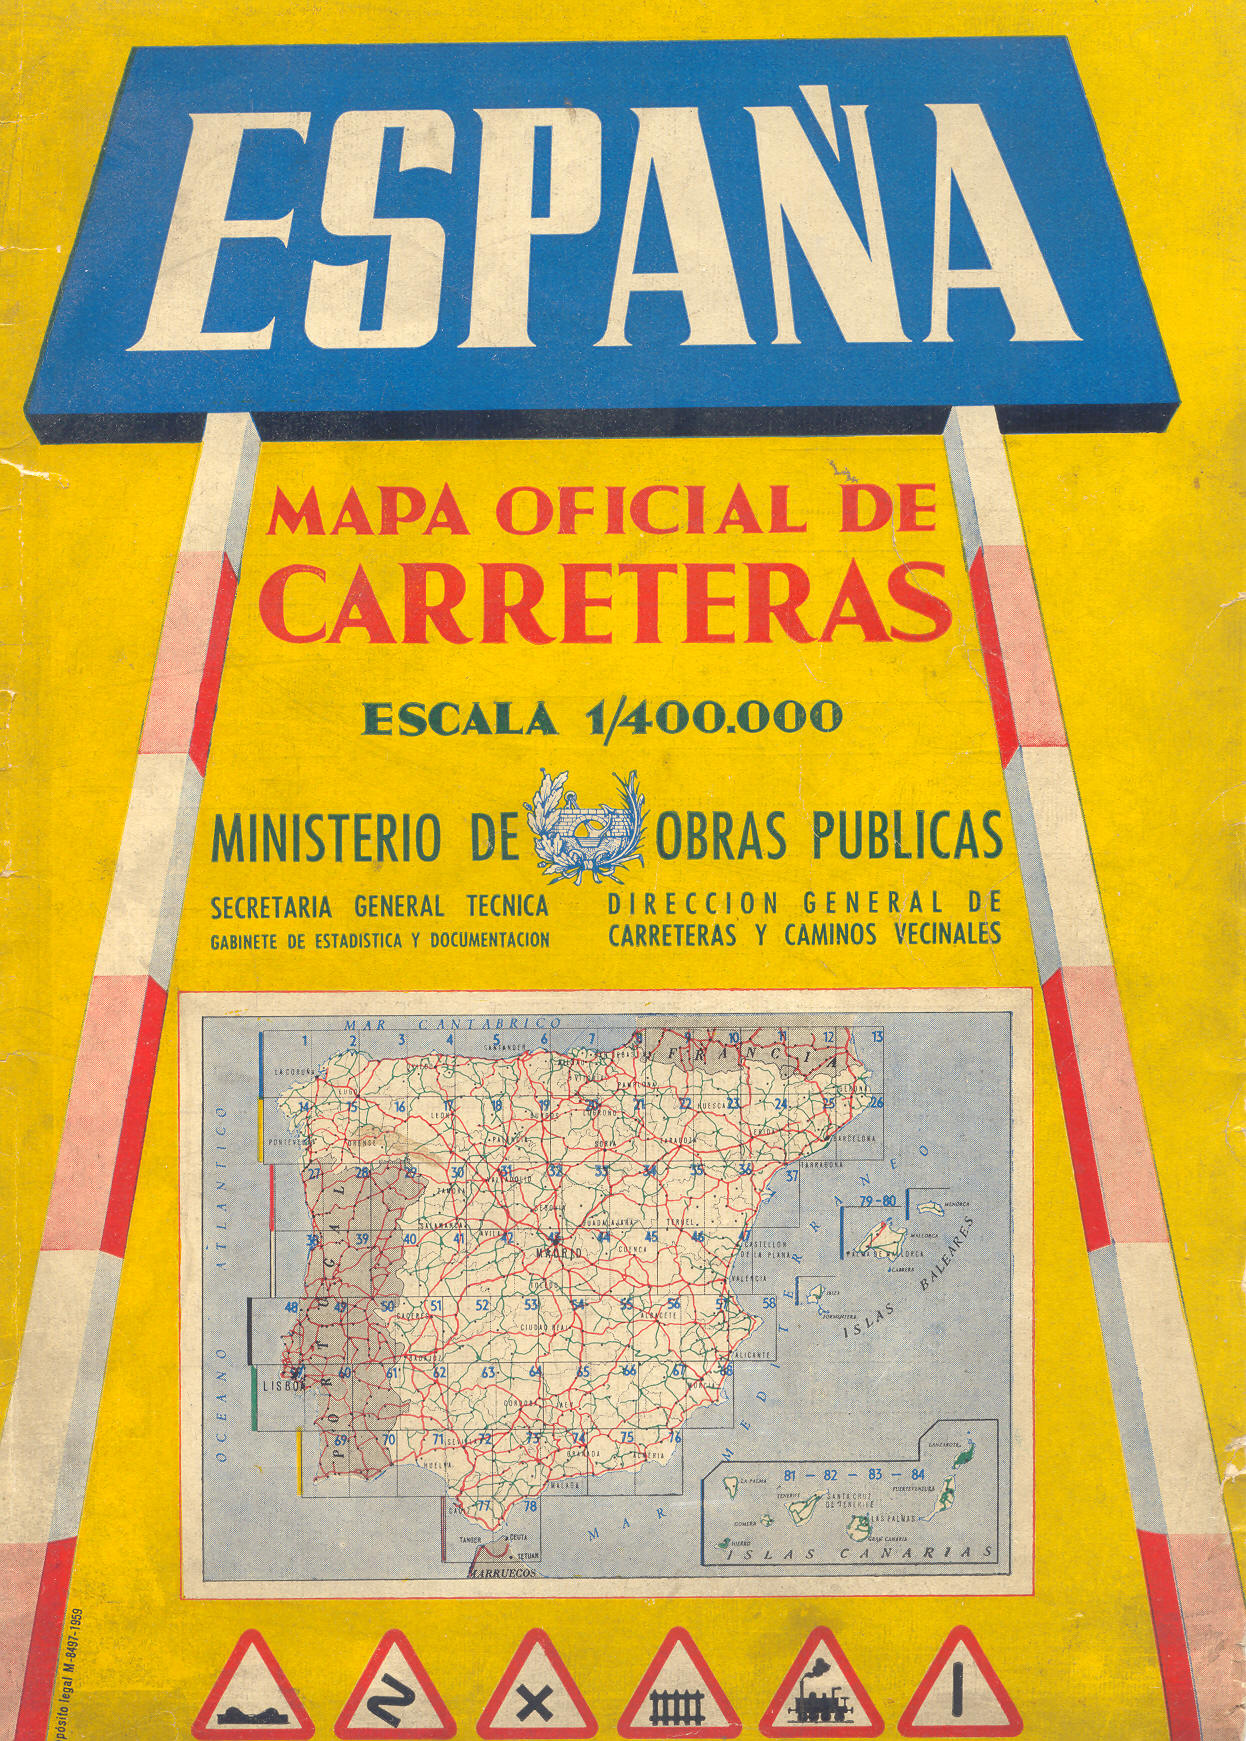 Spain official road map 1959